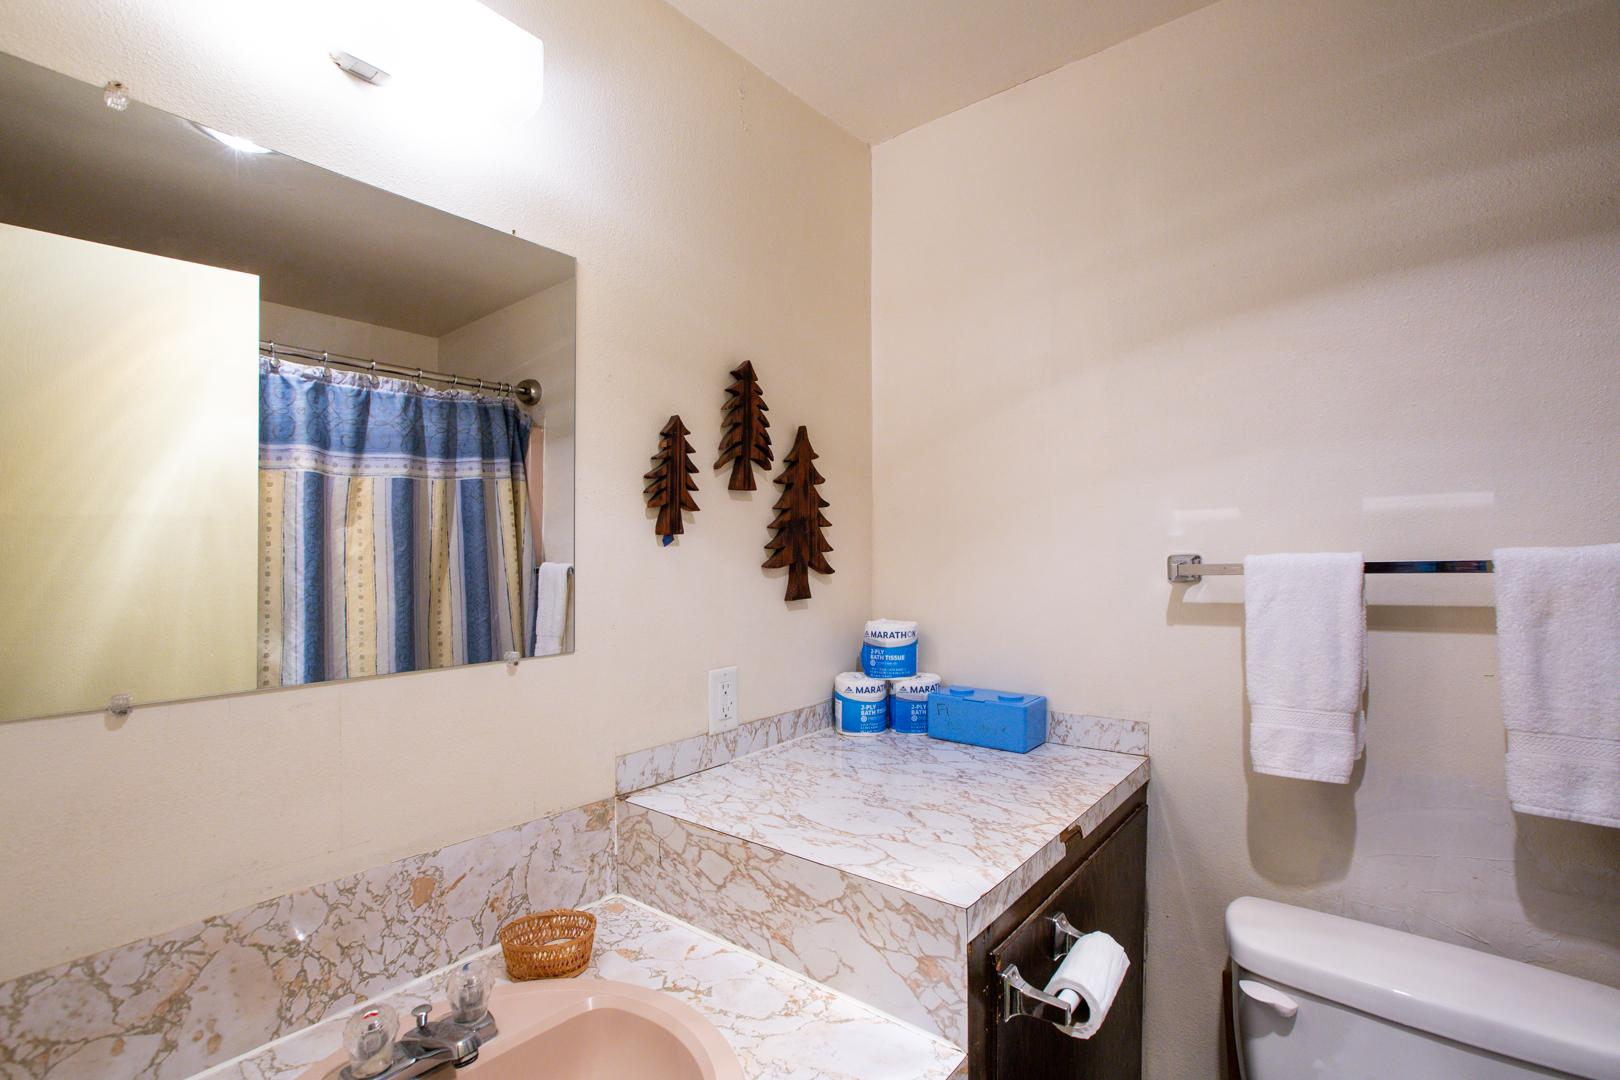 Apartment Mt  Baker Lodging Condo  77     ECONOMICAL  CONVENIENT  KITCHENETTE  SLEEPS-2  photo 31816864